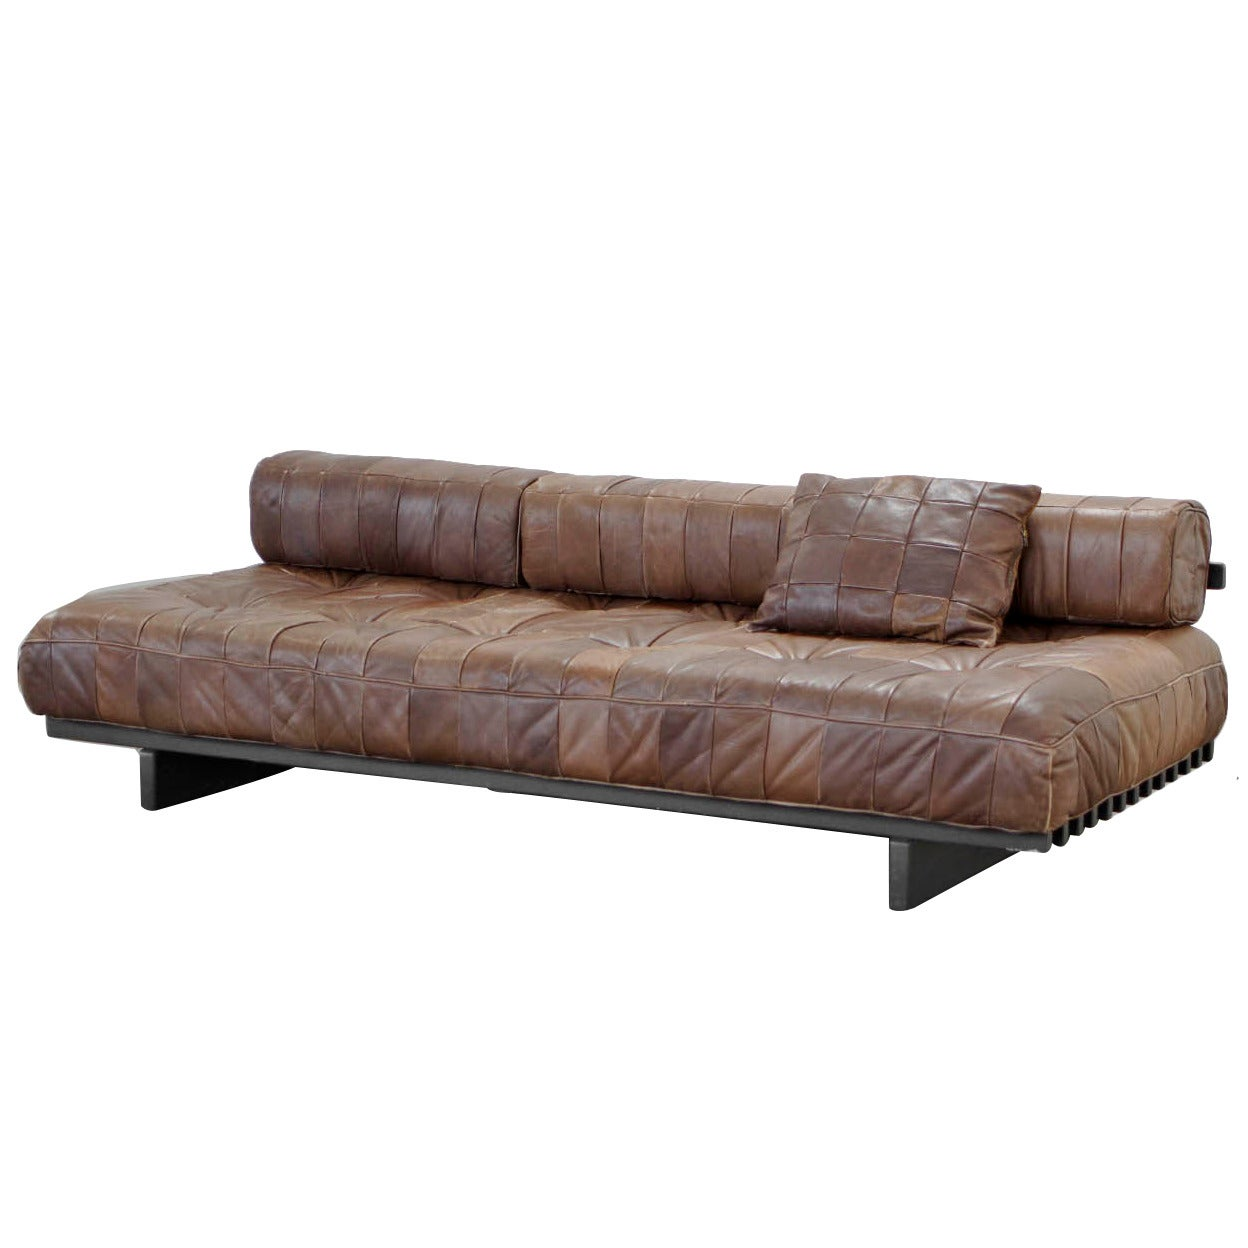 daybed sofas floor seating sofa uk classic by de sede ds 80 1972 at 1stdibs